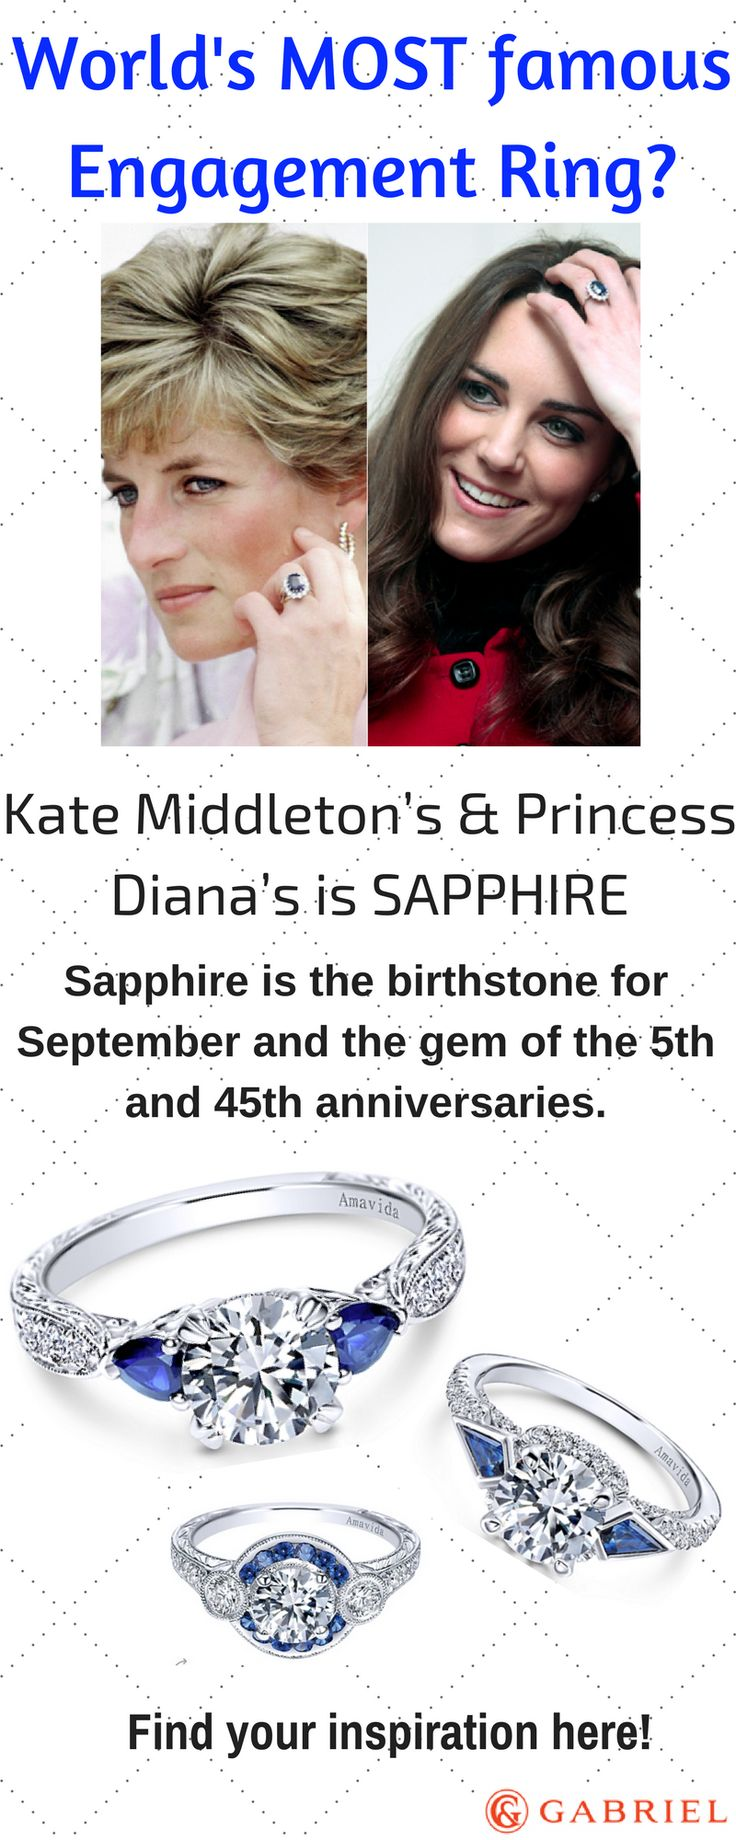 Sapphires have been treasured for thousands of years, aging back to the ancient Romans. Both Kate Middleton and Princess Diana have rocked a deep blue sapphire engagement ring. Deep sapphires are associated with the word 'royalty'-- which may or may not have contributed to the term 'royal blue.' Get your lady feeling royal today by checking out our selection of sapphire engagement rings, so she too, can feel like a Princess on her Wedding Day.